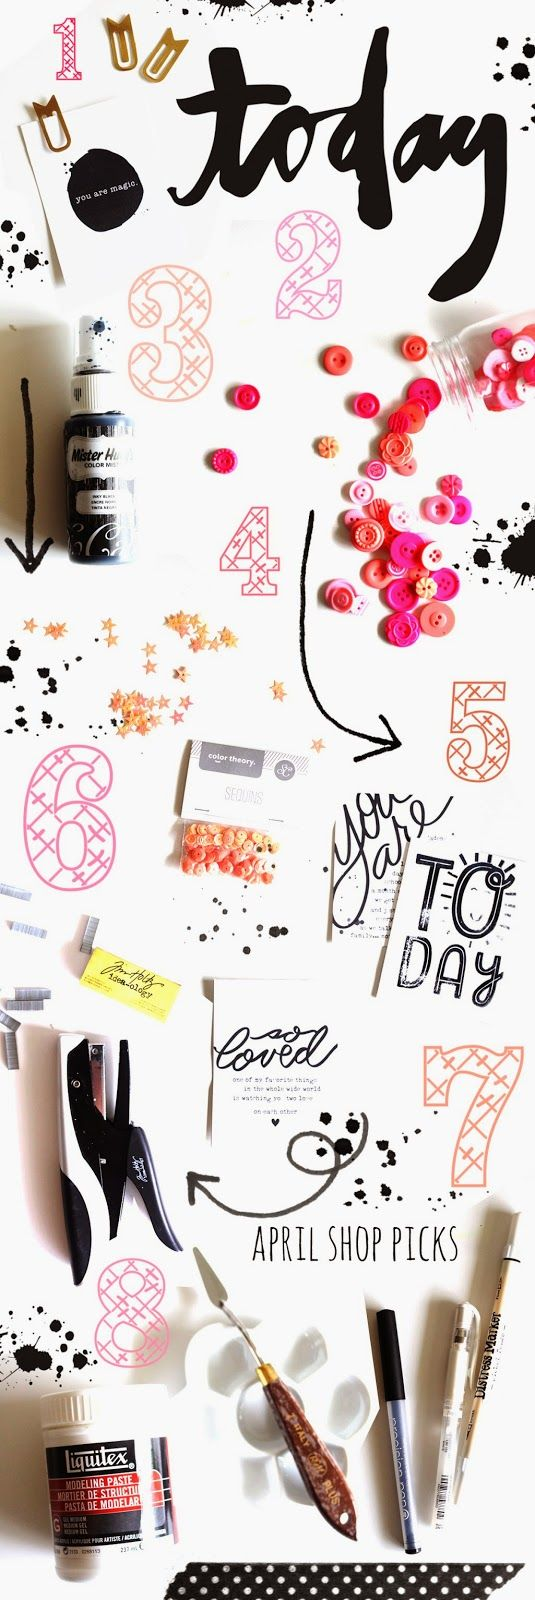 April Shop Picks for Studio Calico by Shanna Noel :)